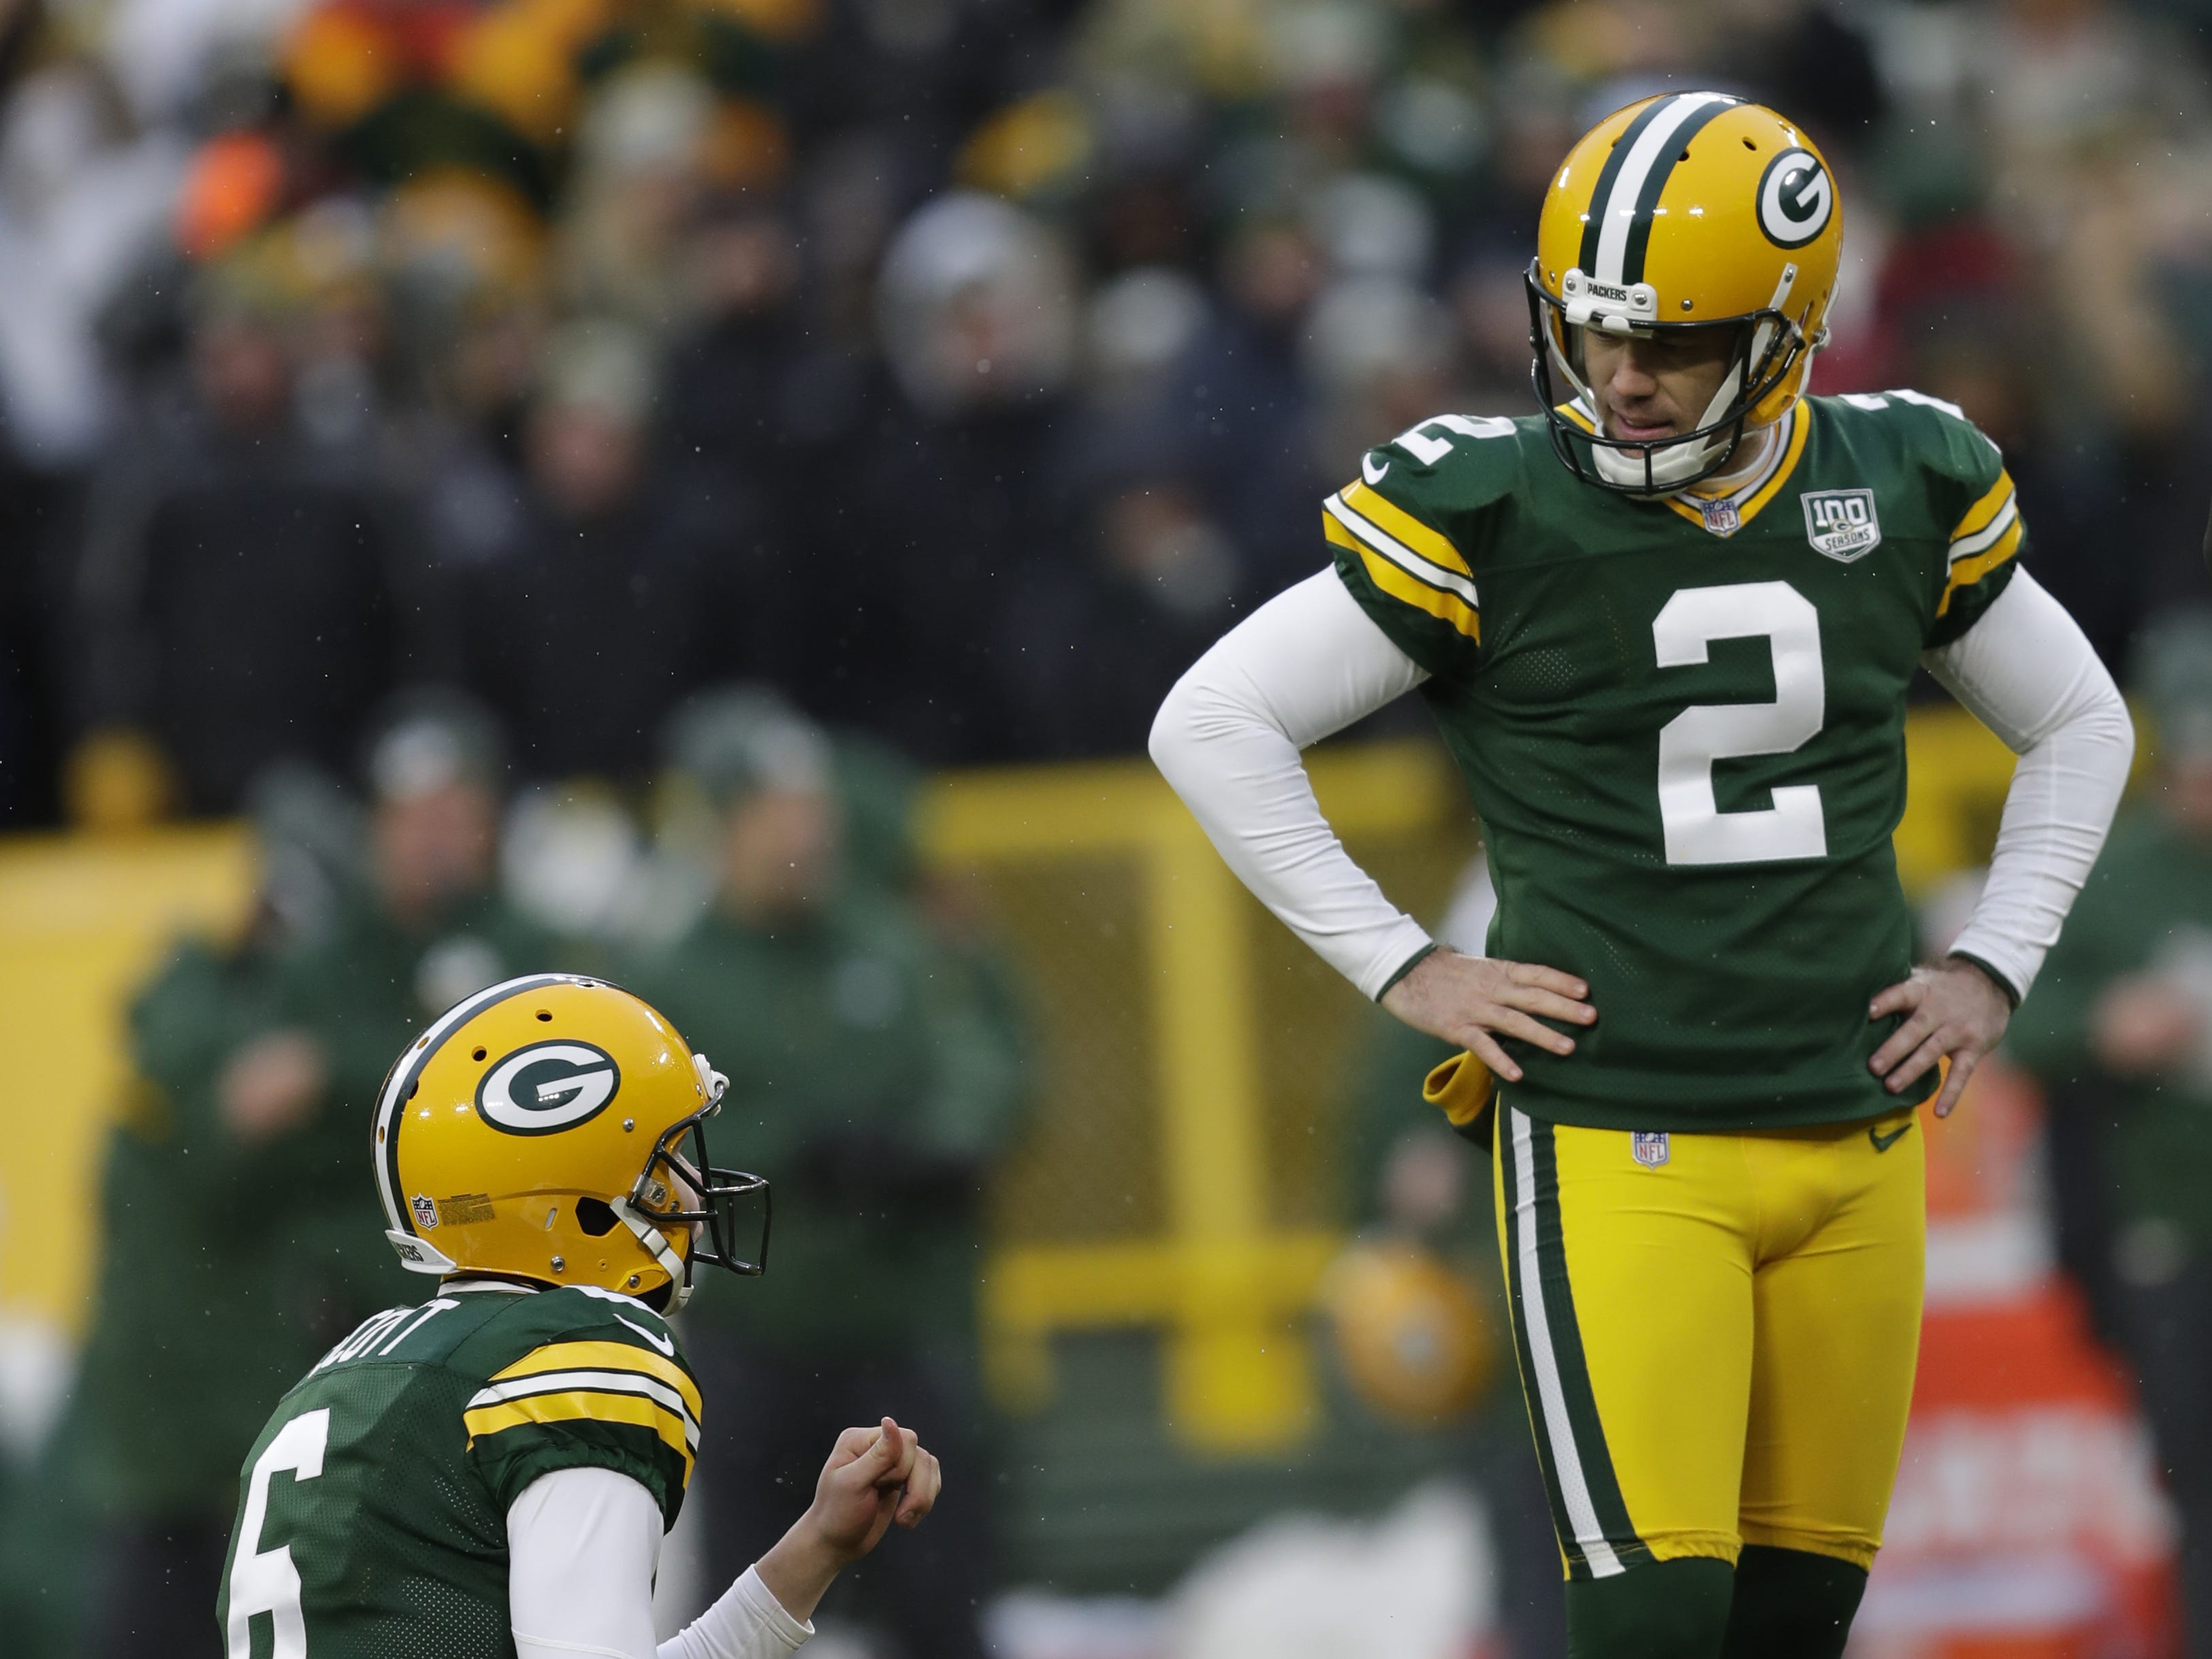 Green Bay Packers kicker Mason Crosby (2) and Green Bay Packers punter J.K. Scott (6) react to a misssing the potential game-tying fieldgoal as time expires against the Arizona Cardinals Sunday, December 2, 2018, at Lambeau Field in Green Bay, Wis.  Dan Powers/USA TODAY NETWORK-Wisconsin Sunday, December 2, 2018, at Lambeau Field in Green Bay, Wis.  Dan Powers/USA TODAY NETWORK-Wisconsin